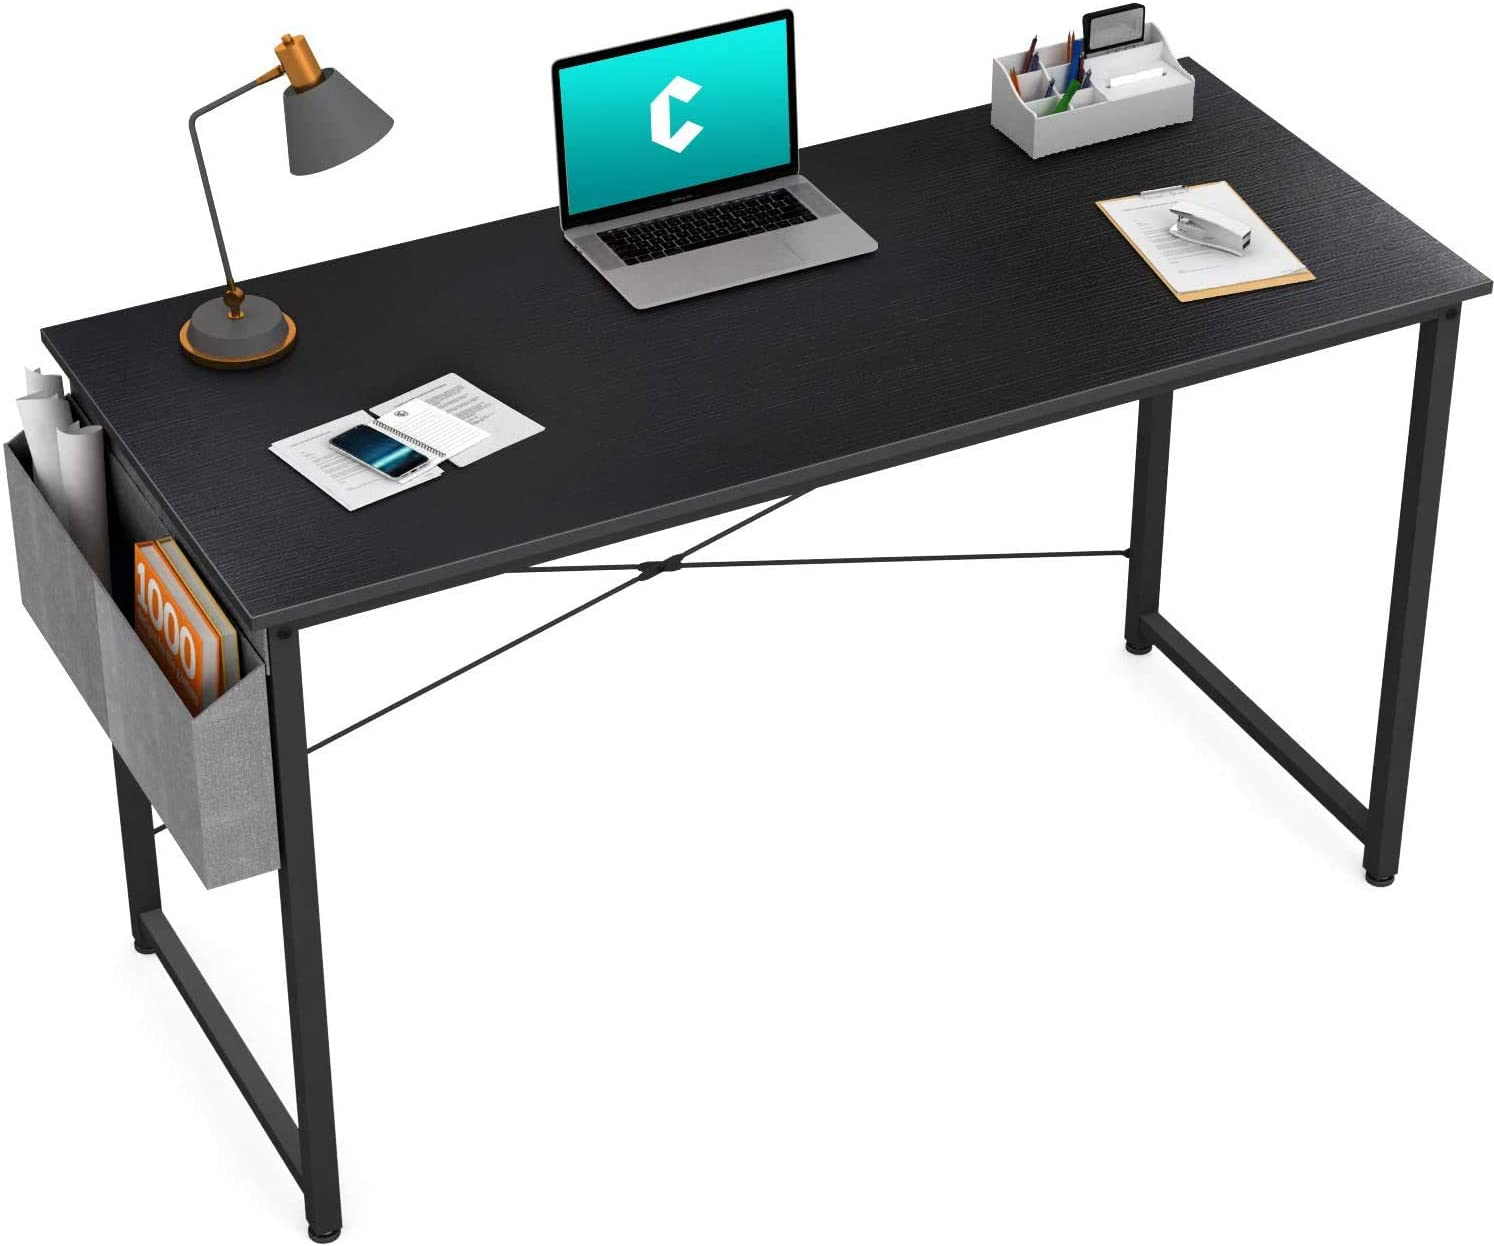 """Cubiker Computer Desk 32"""" Home Office Writing Study Desk, Modern Simple Style Laptop Table with Storage Bag, Black"""